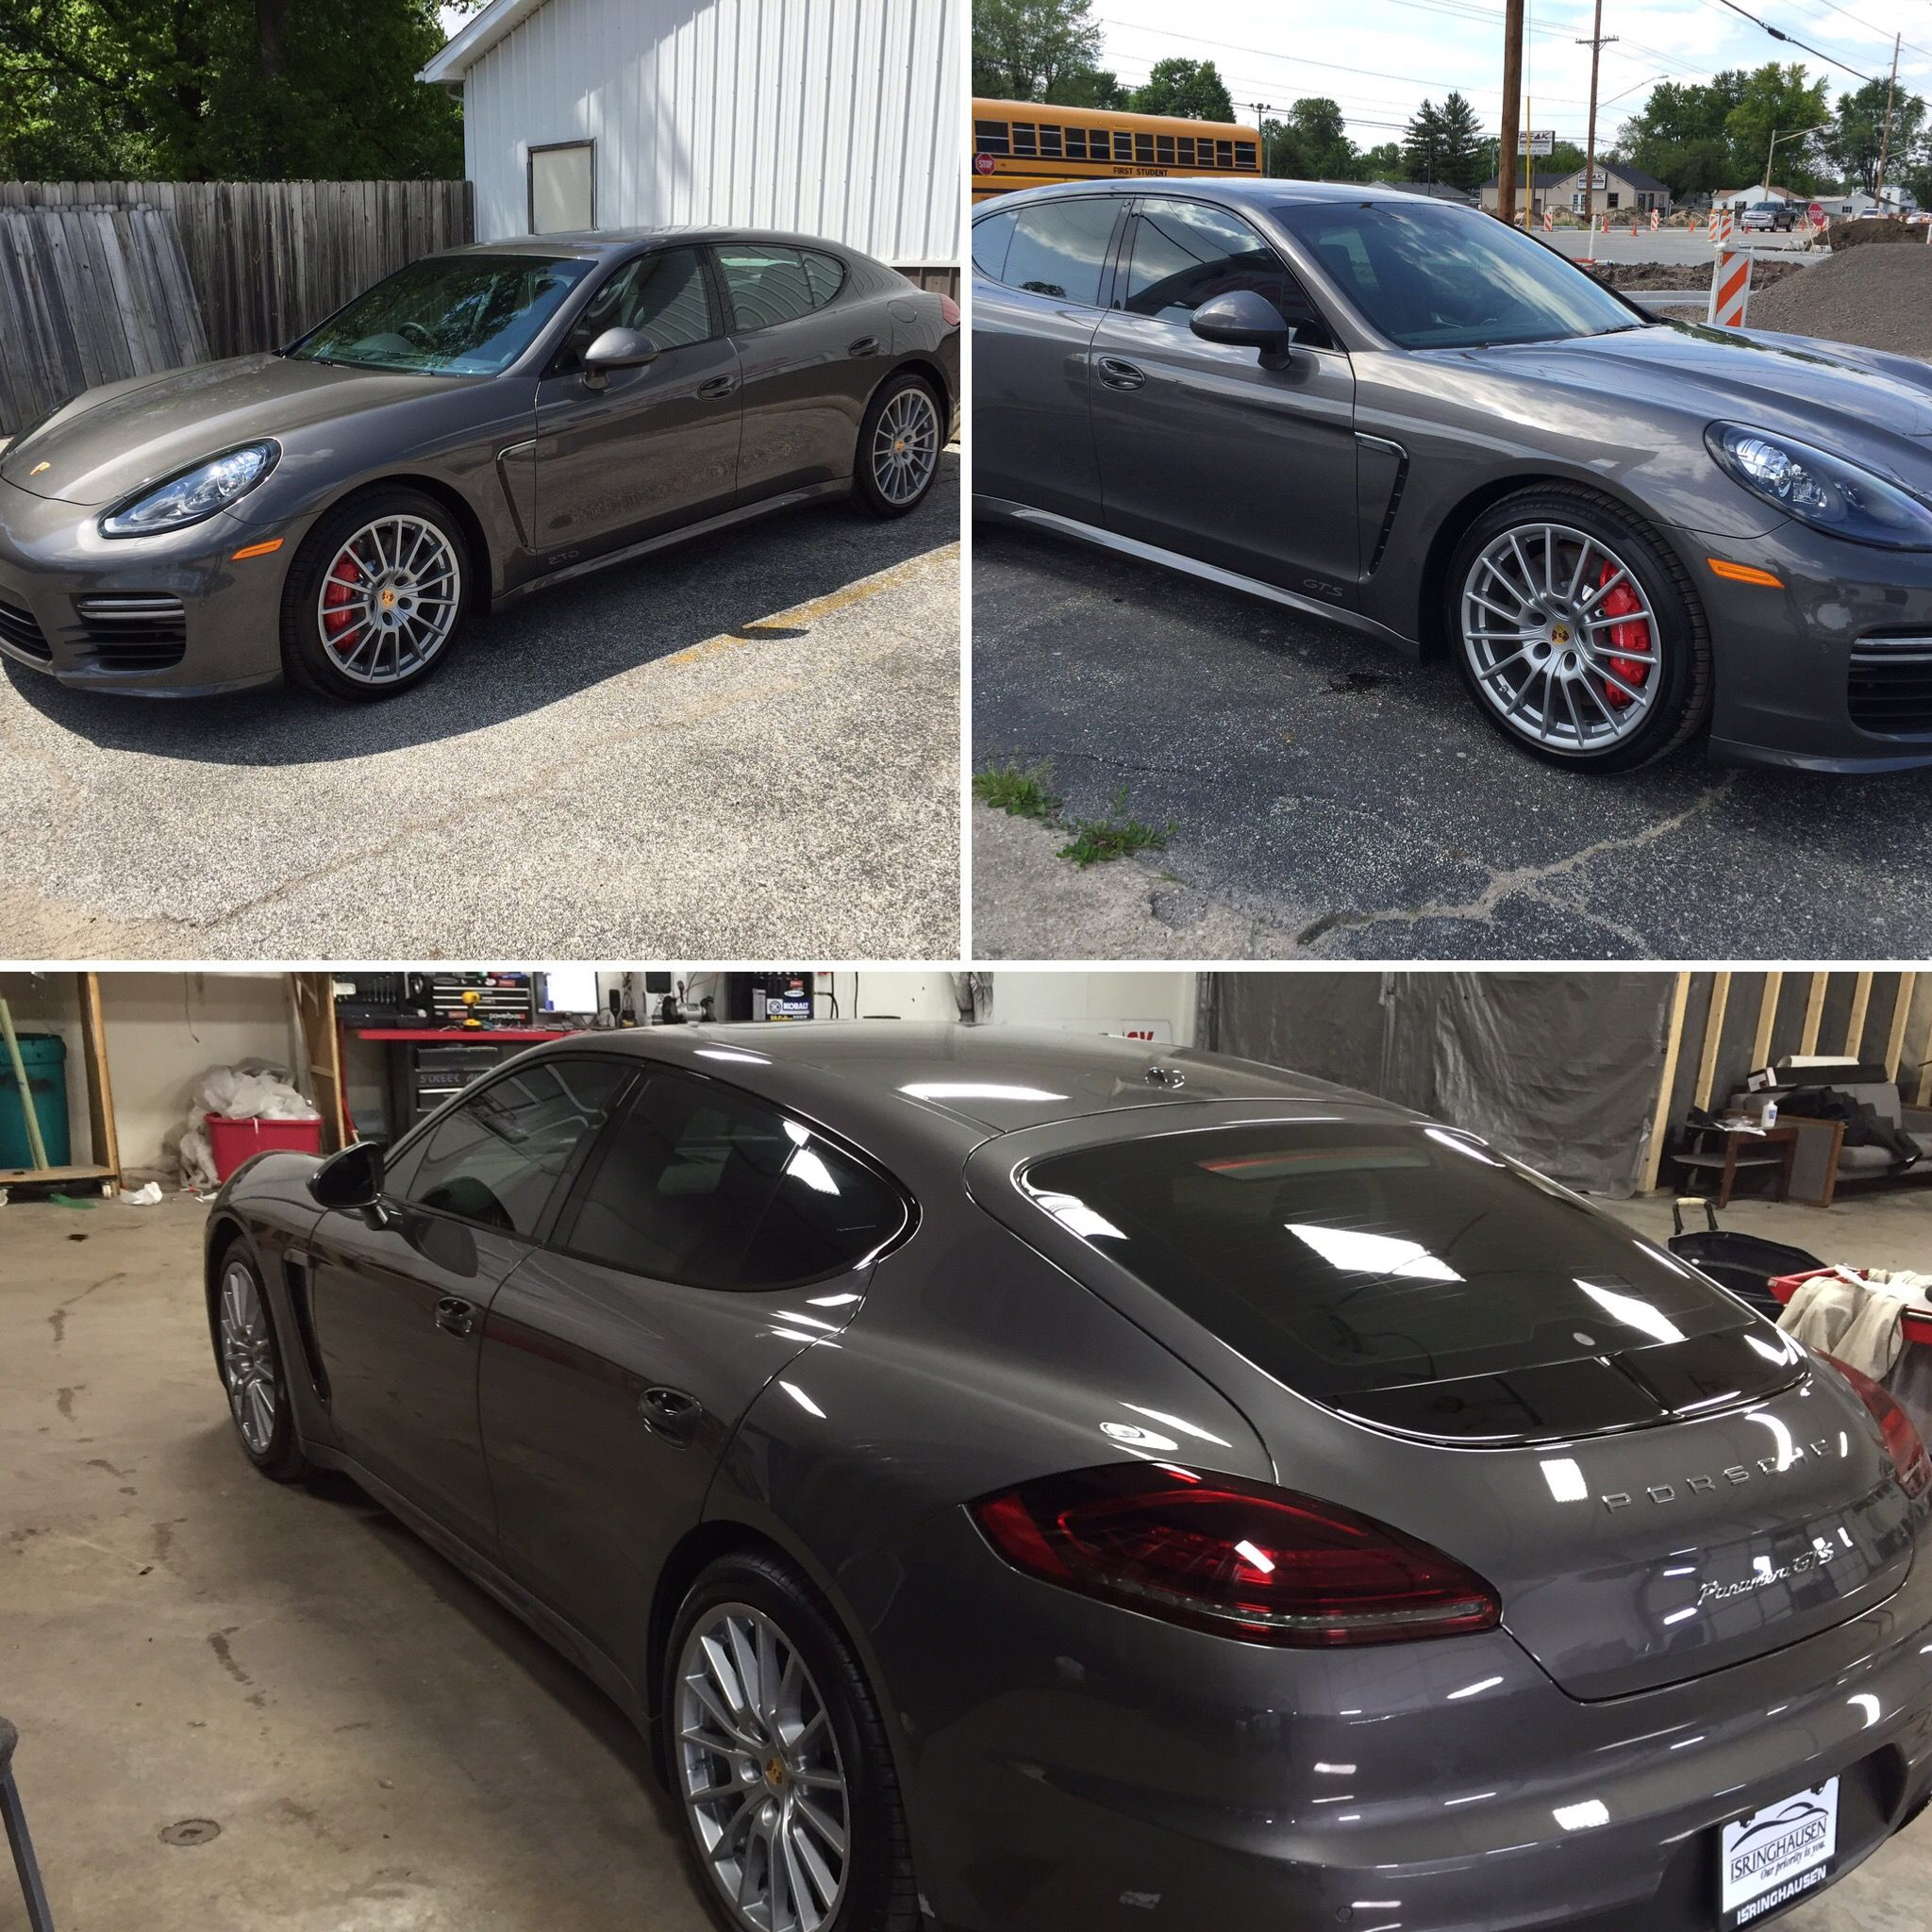 Window Tinting Film >> Porsche Panamera Window Tinting Ceramic Heat Rejection, UV Protection, Sun Protection, Privacy ...